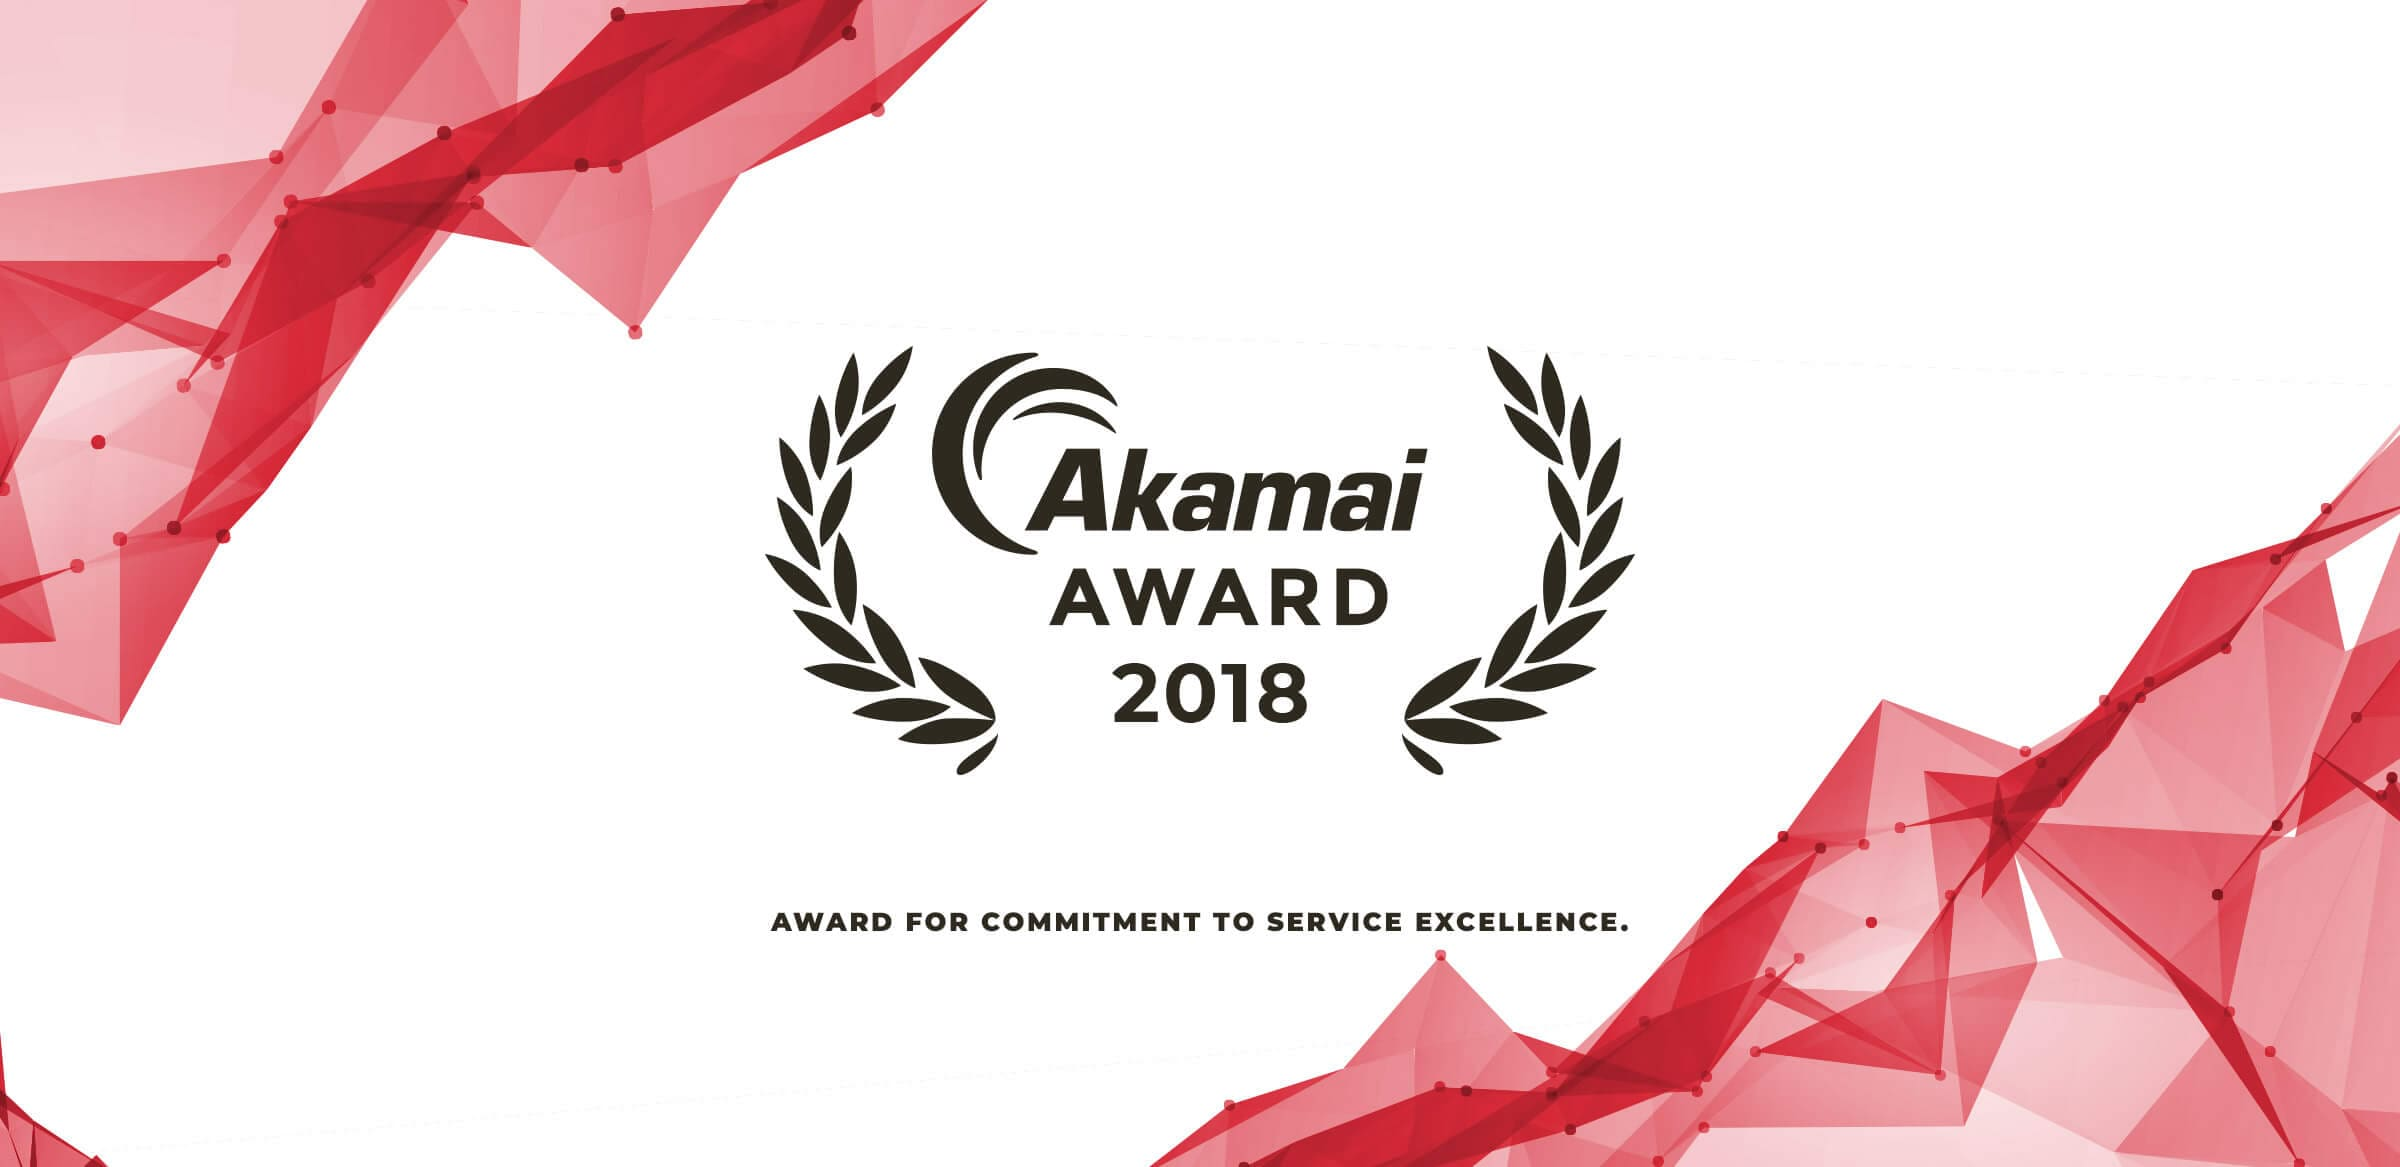 Arturai is proud to announce its Akamai 2018 Commitment to Service Excellence Award winning.